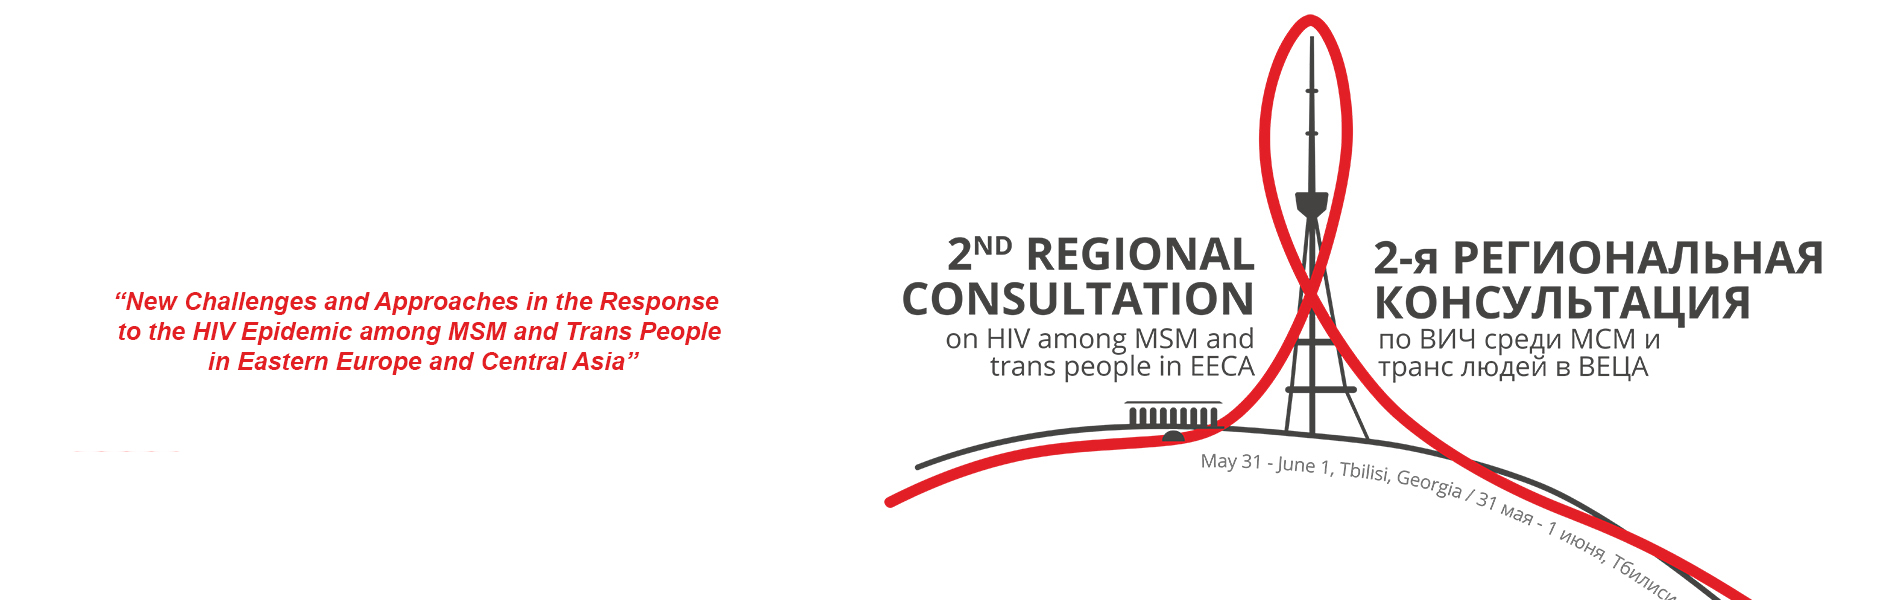 The Eurasian Coalition on Male Health announces the 2nd Regional Consultation on HIV among MSM and Trans People in Eastern Europe and Central Asia to be held on 31 May – 1 June 2018 in Tbilisi, Georgia.